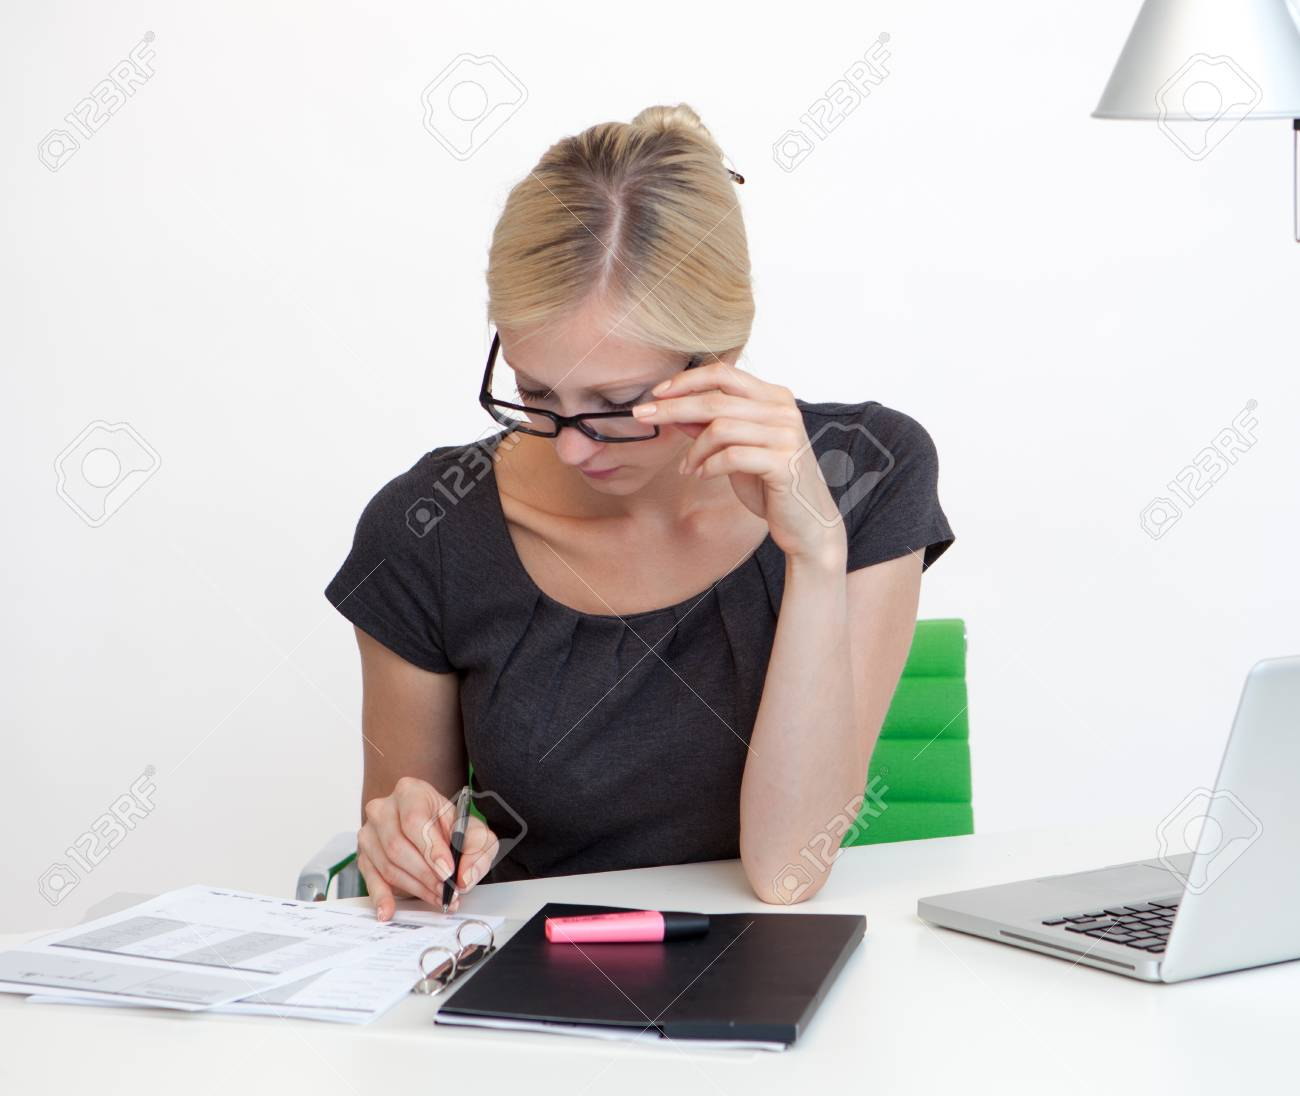 Young Business woman is smiling while working at work desk Stock Photo - 26712112